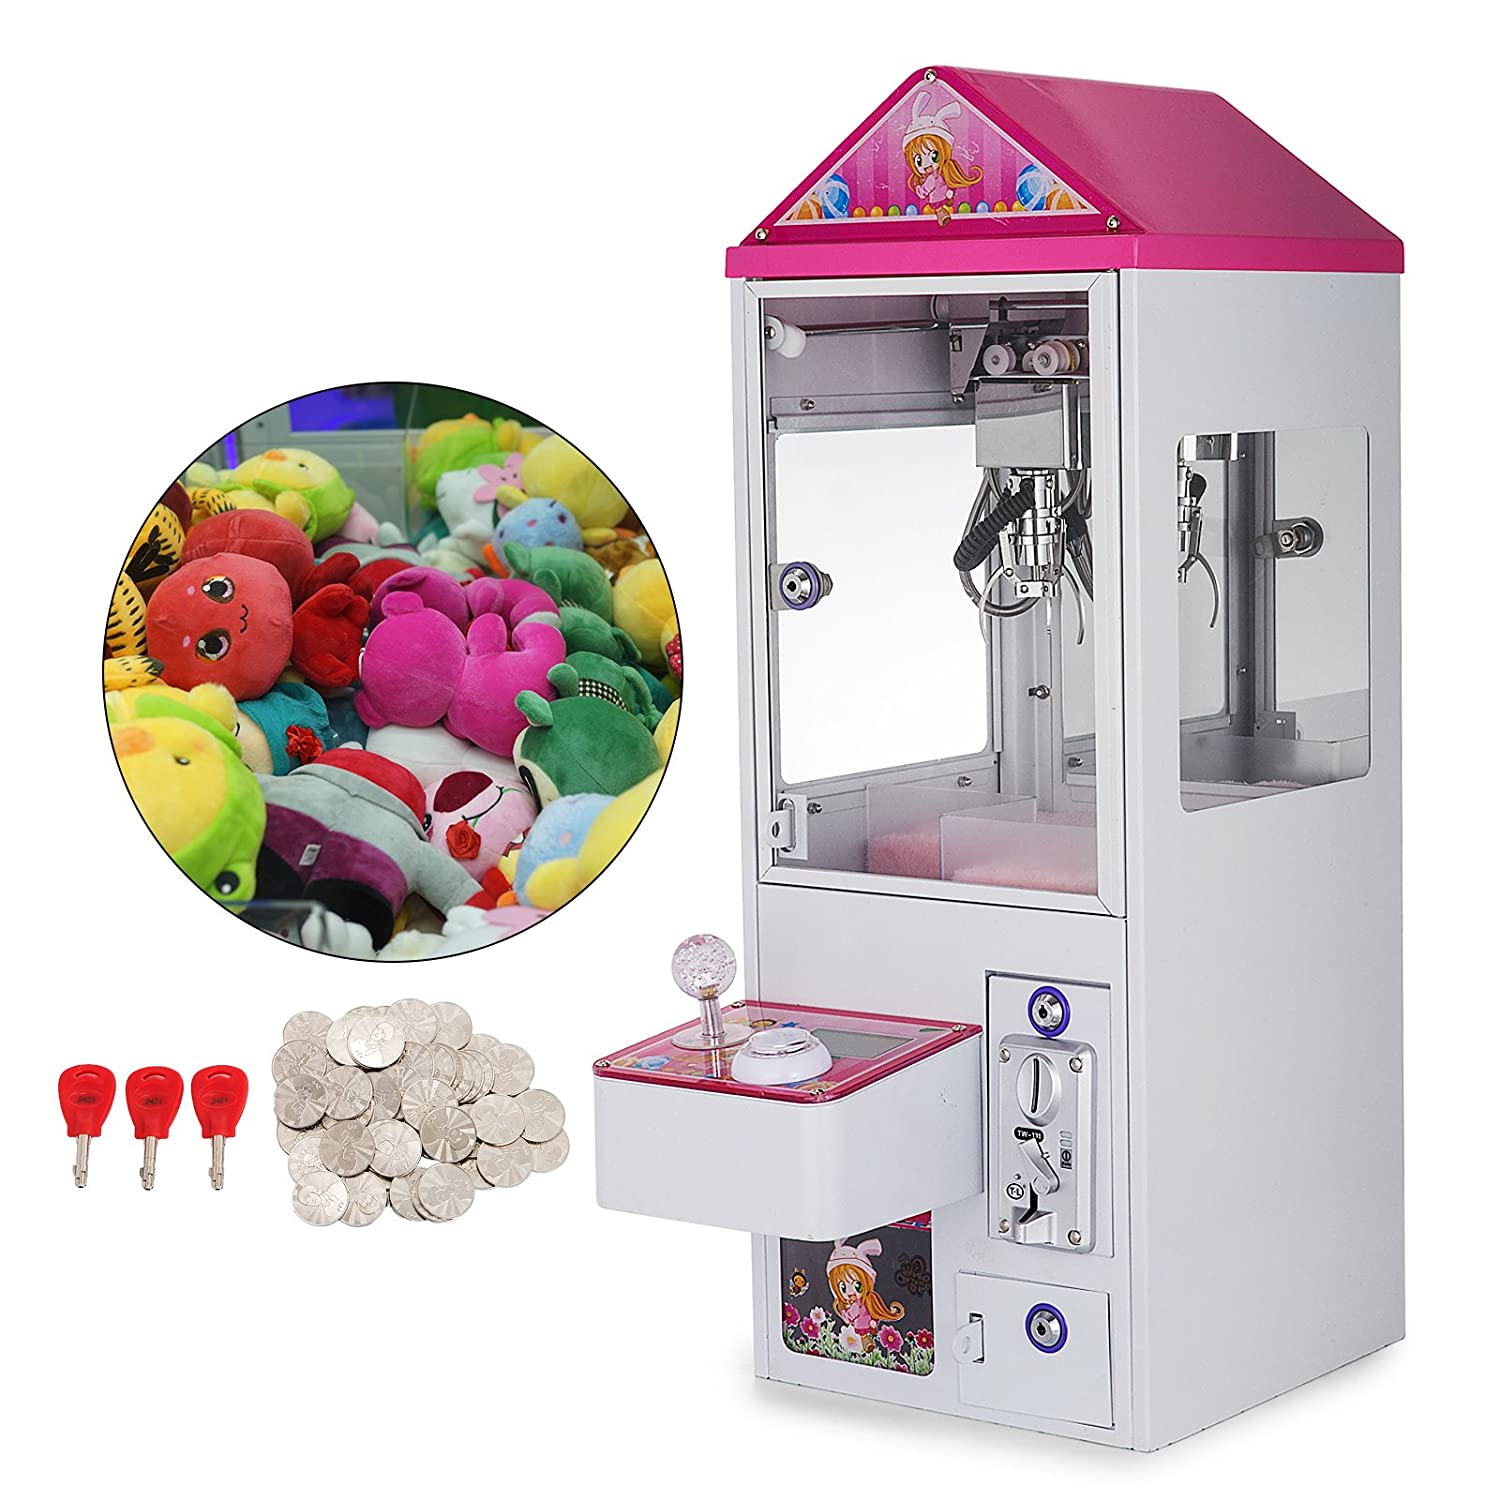 Happybuy 150W Mini Claw Crane Machine Metal Case with Led Flashing Lights  Loud Sound Effect and Coins Doll Balls Candy Toy Catcher Toy Grabber Claw